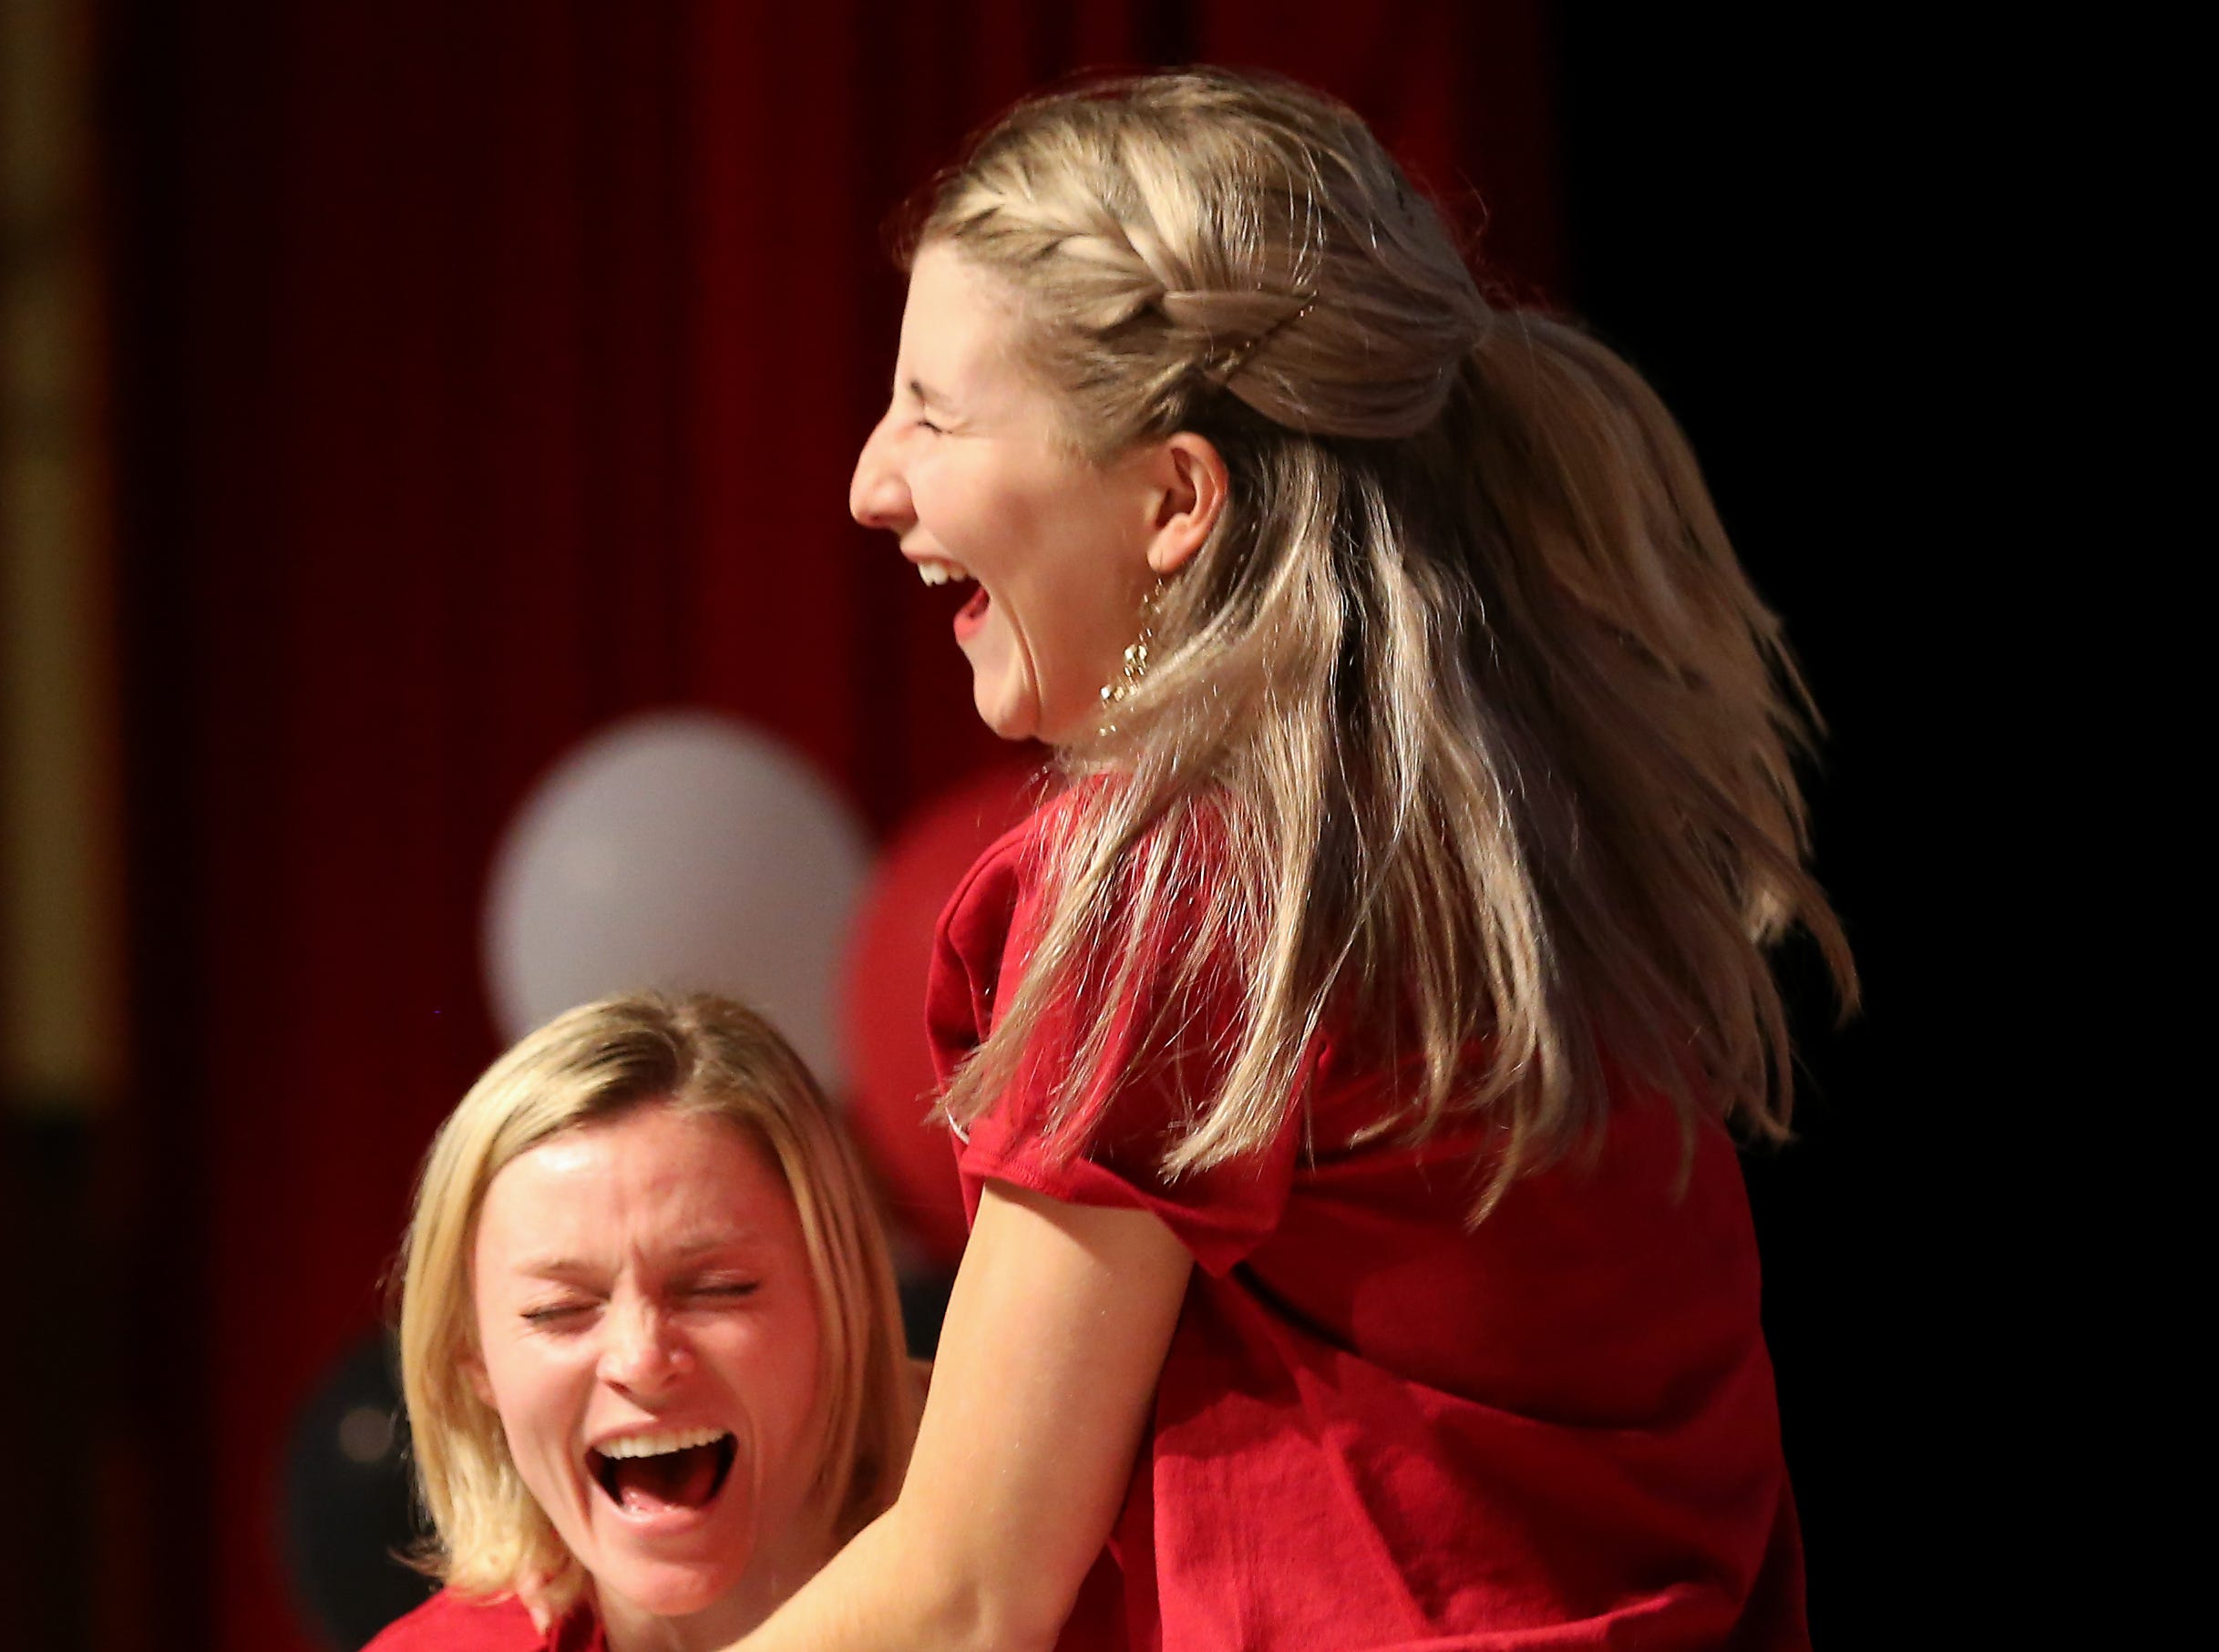 Morgan Ferros, left, reacts with her friend Helen Mulachy, right, after finding out she will doing her residency in emergency medicine at the University of Utah during Match Day, Friday, March 15, 2019, at the University of Cincinnati's College of Medicine.